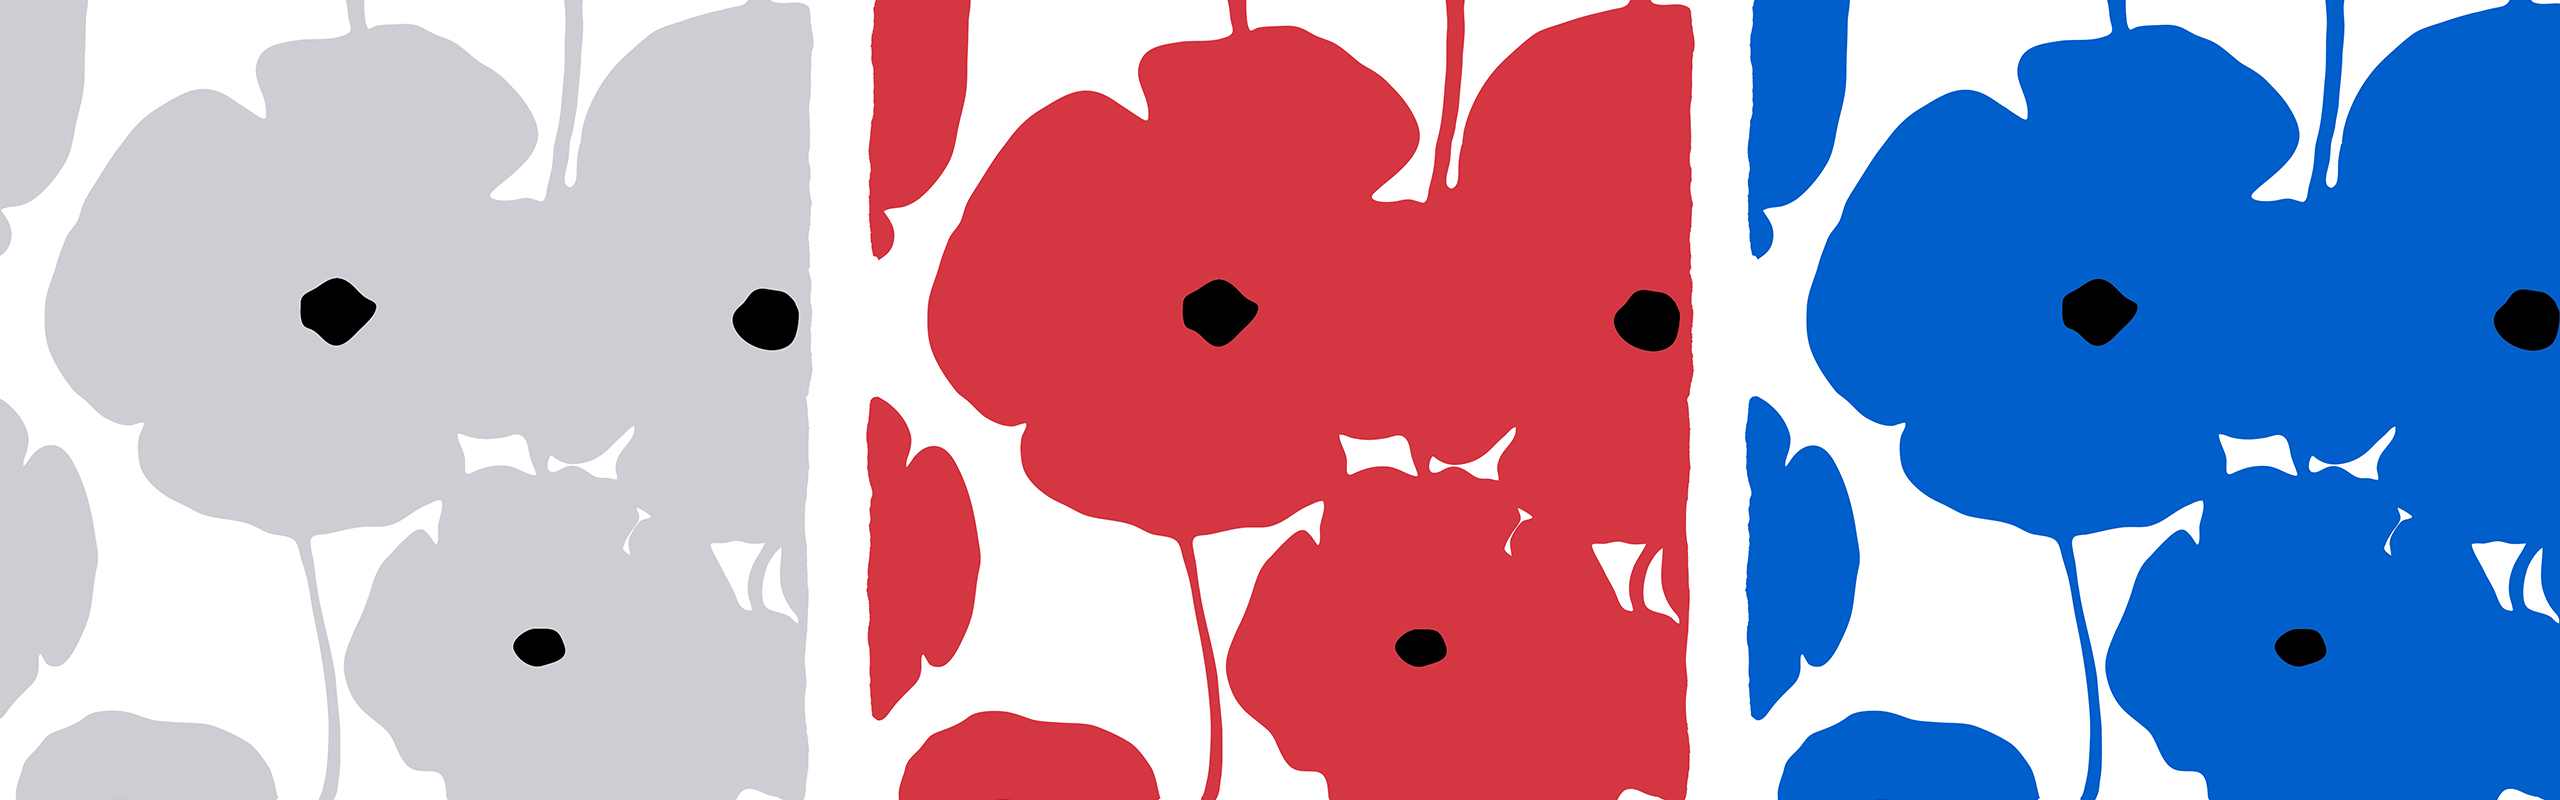 David Sultan Four Poppies 2018, Banner